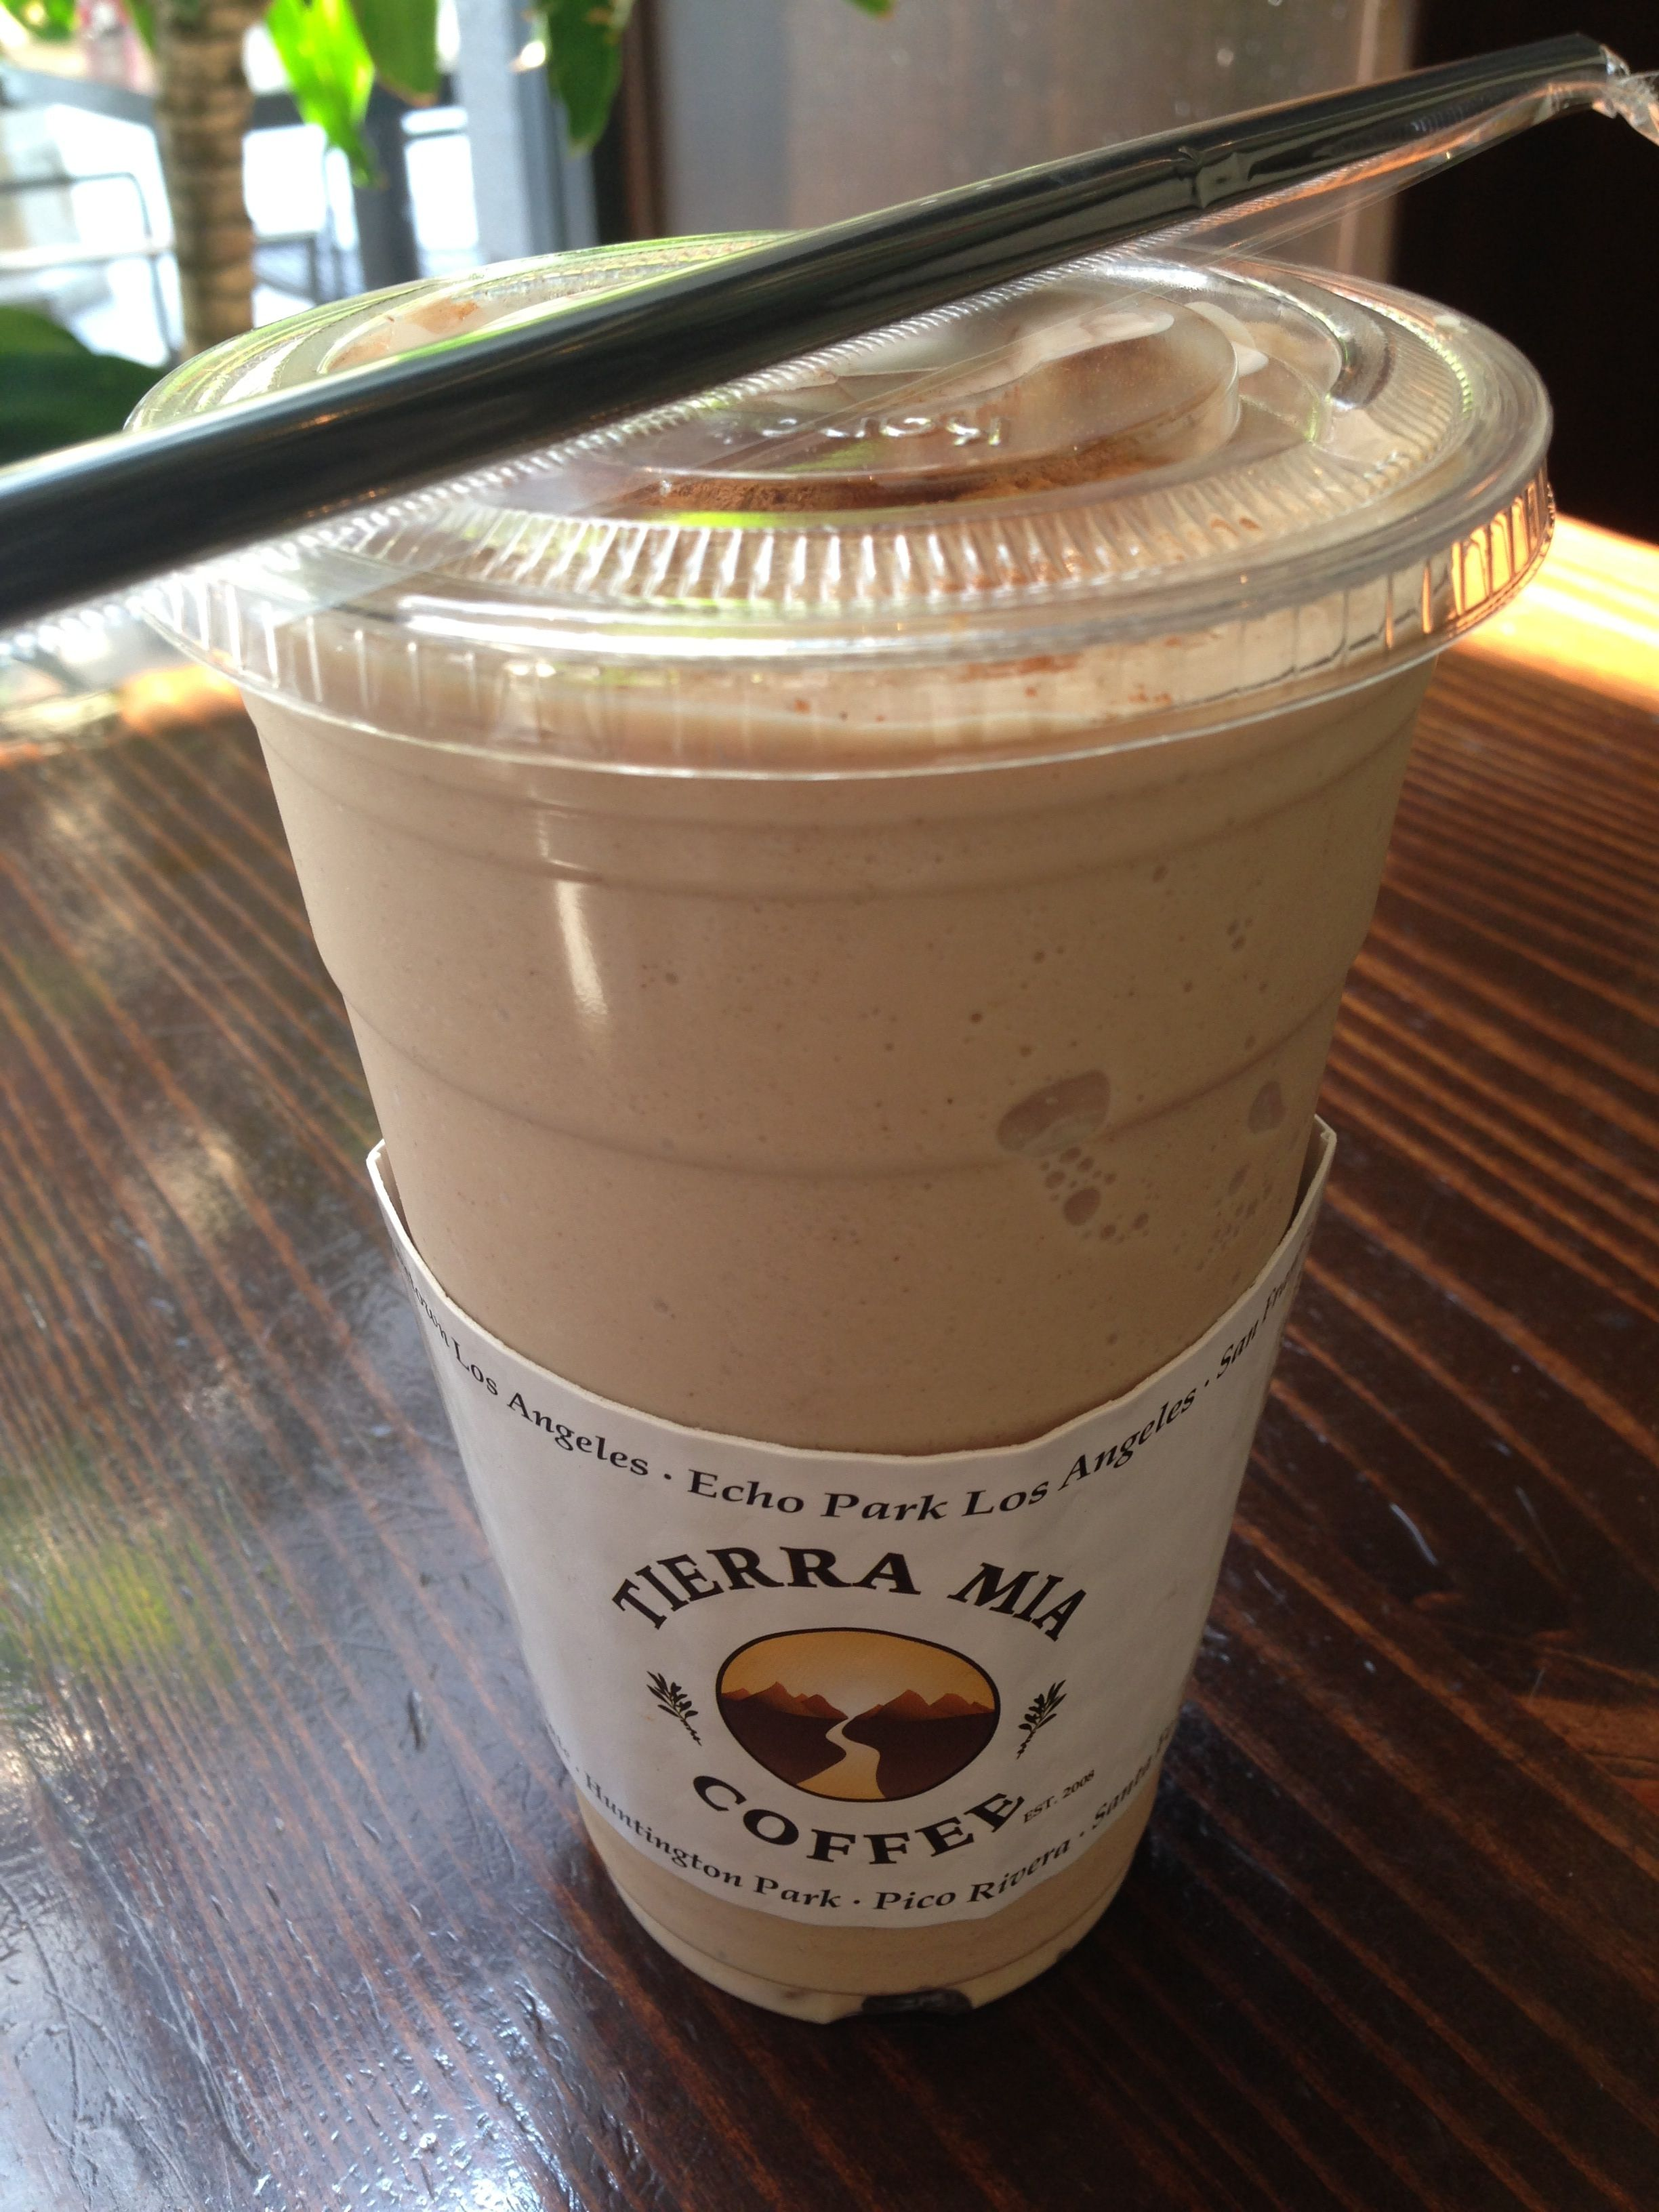 Perfect Summer Day Treat In Dtla Horchata Frappe From Tierra Mia Coffee On Spring Street Downtownla Horchata Caffeine Fiend Frappe